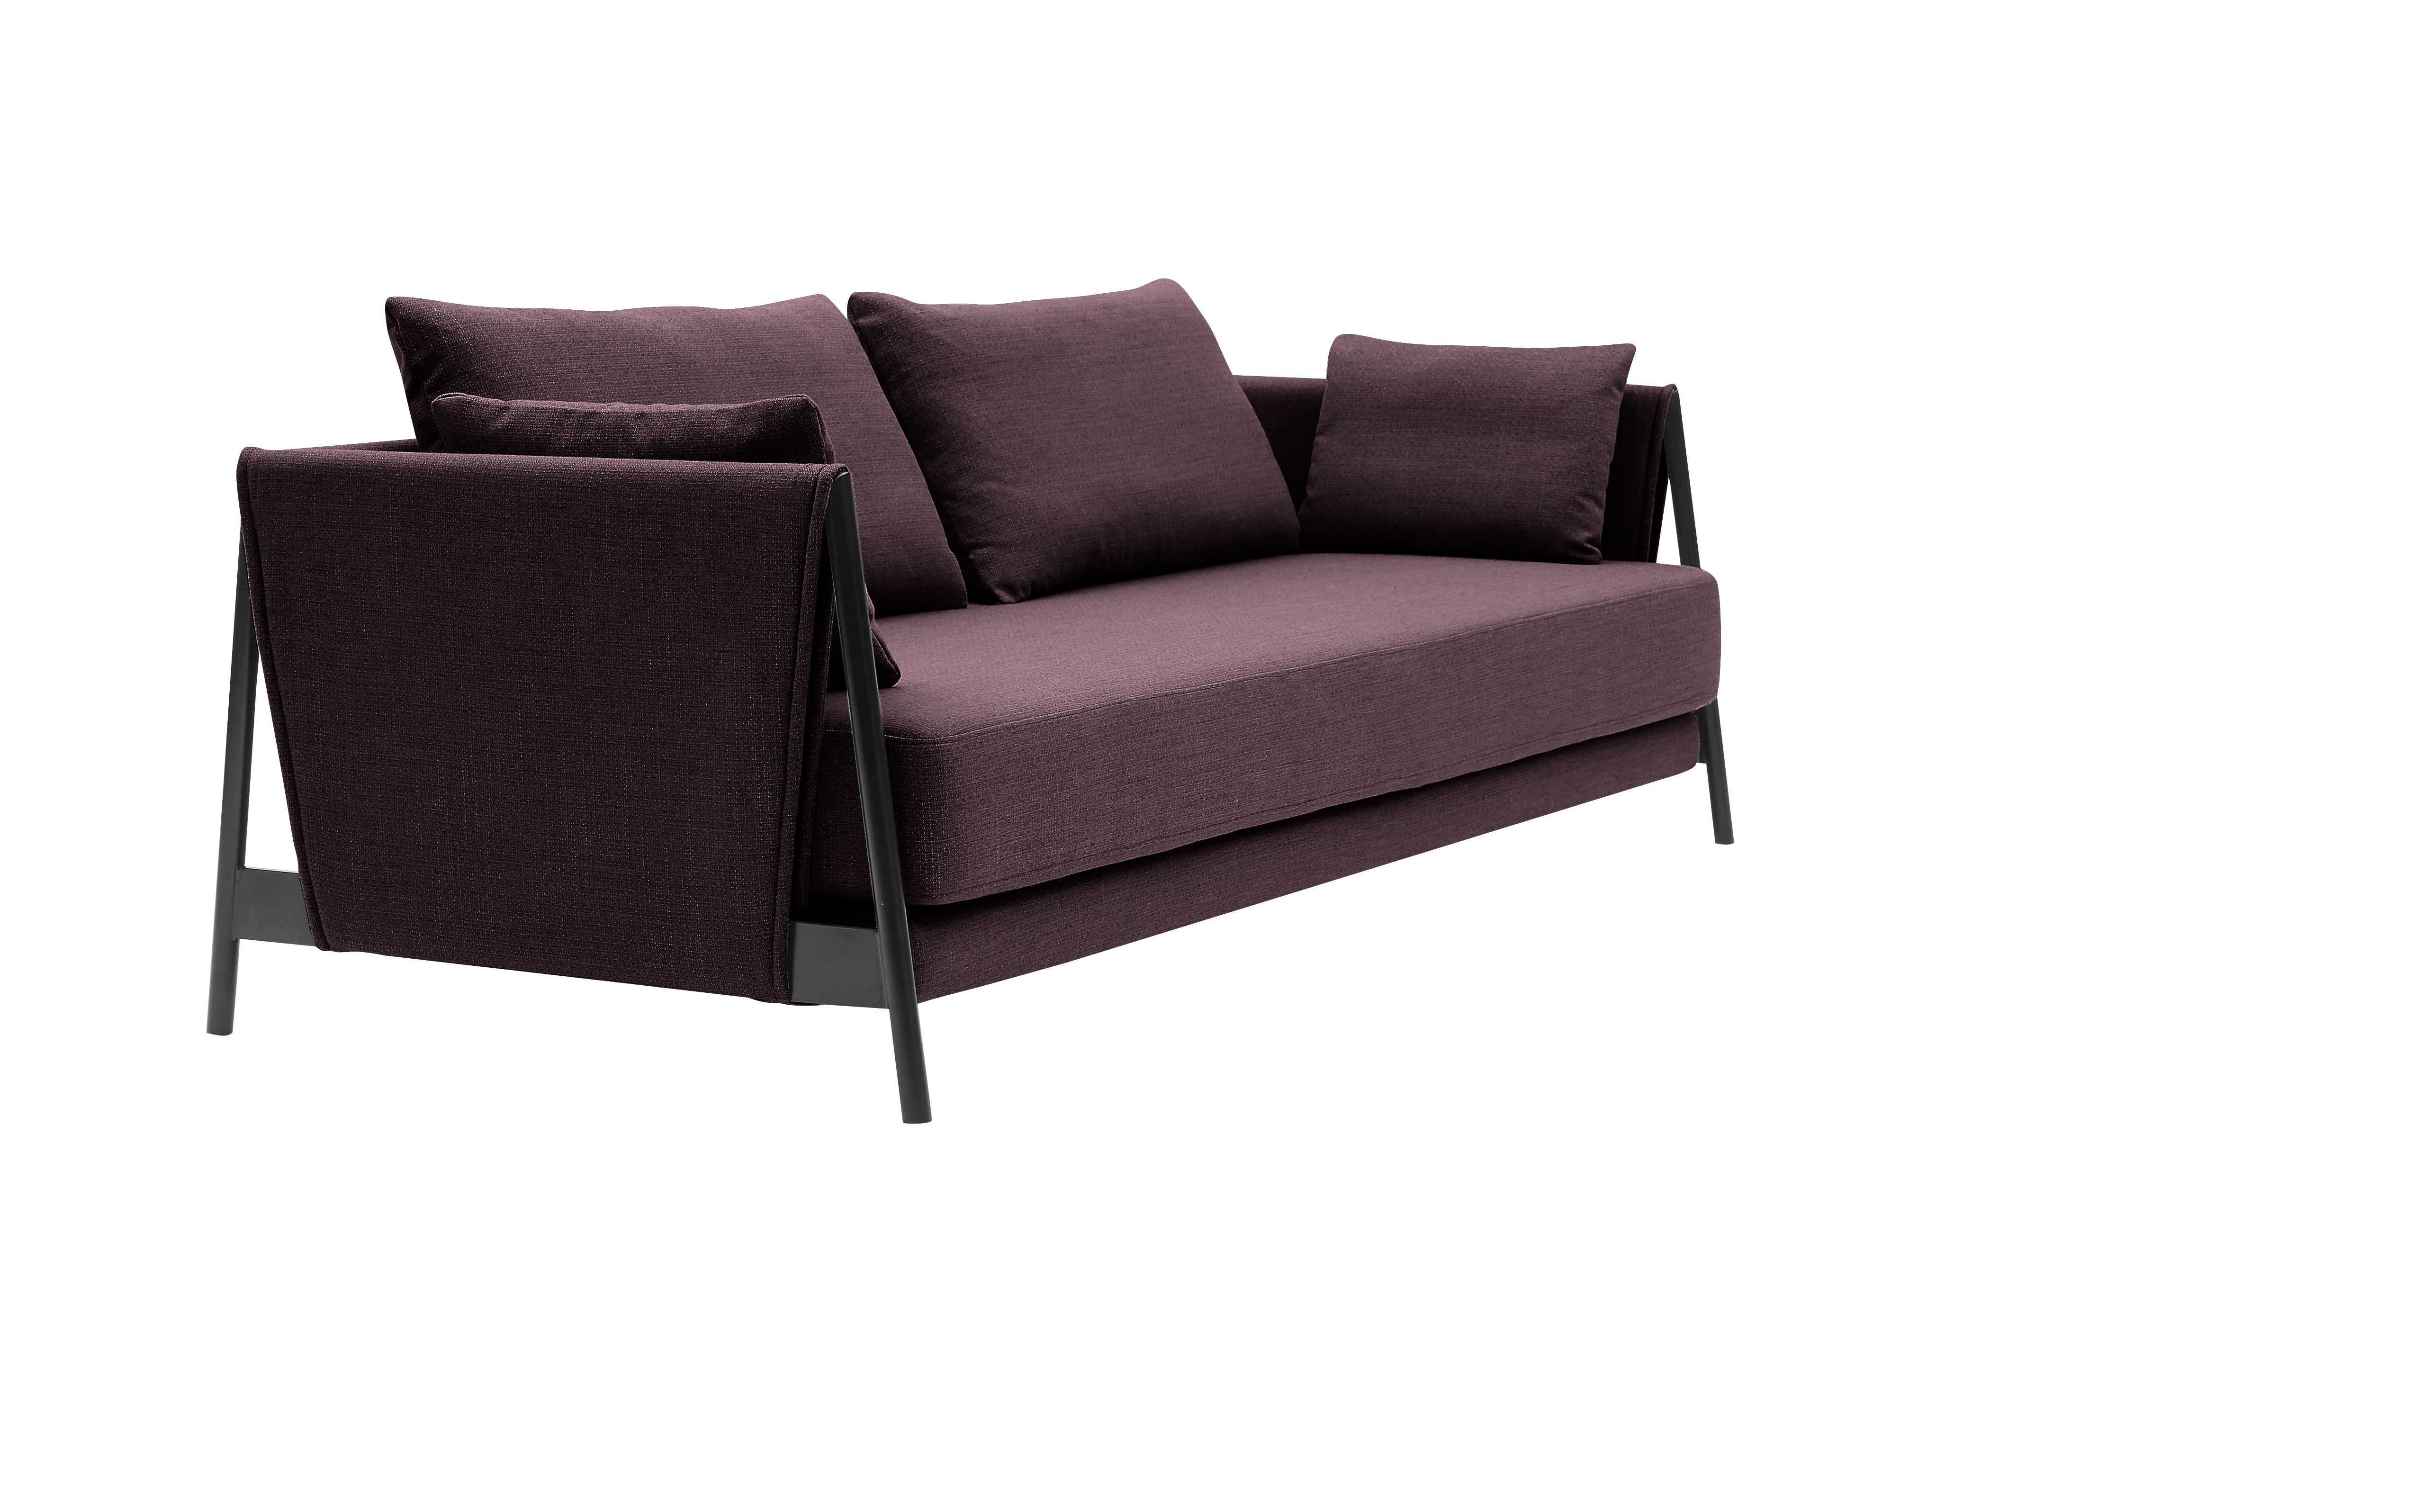 Softline Schlafsofa Softline Schlafsofa Madison In 2018 Softline Pinterest